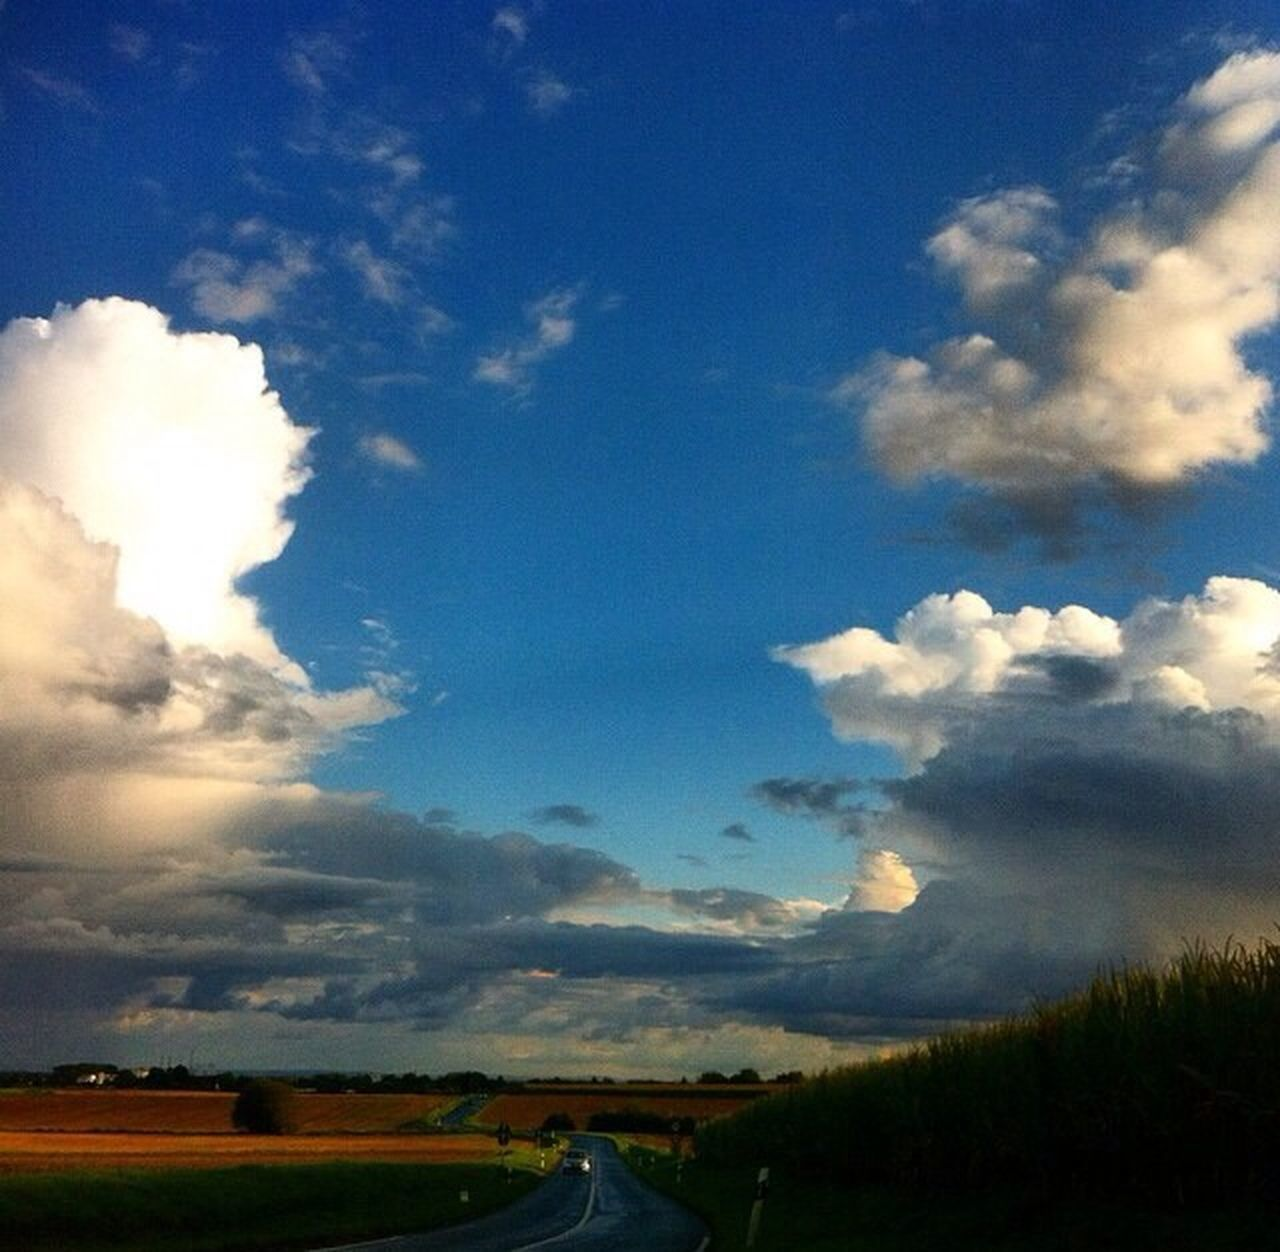 cloud - sky, sky, no people, architecture, built structure, landscape, field, blue, nature, beauty in nature, outdoors, day, scenics, building exterior, tree